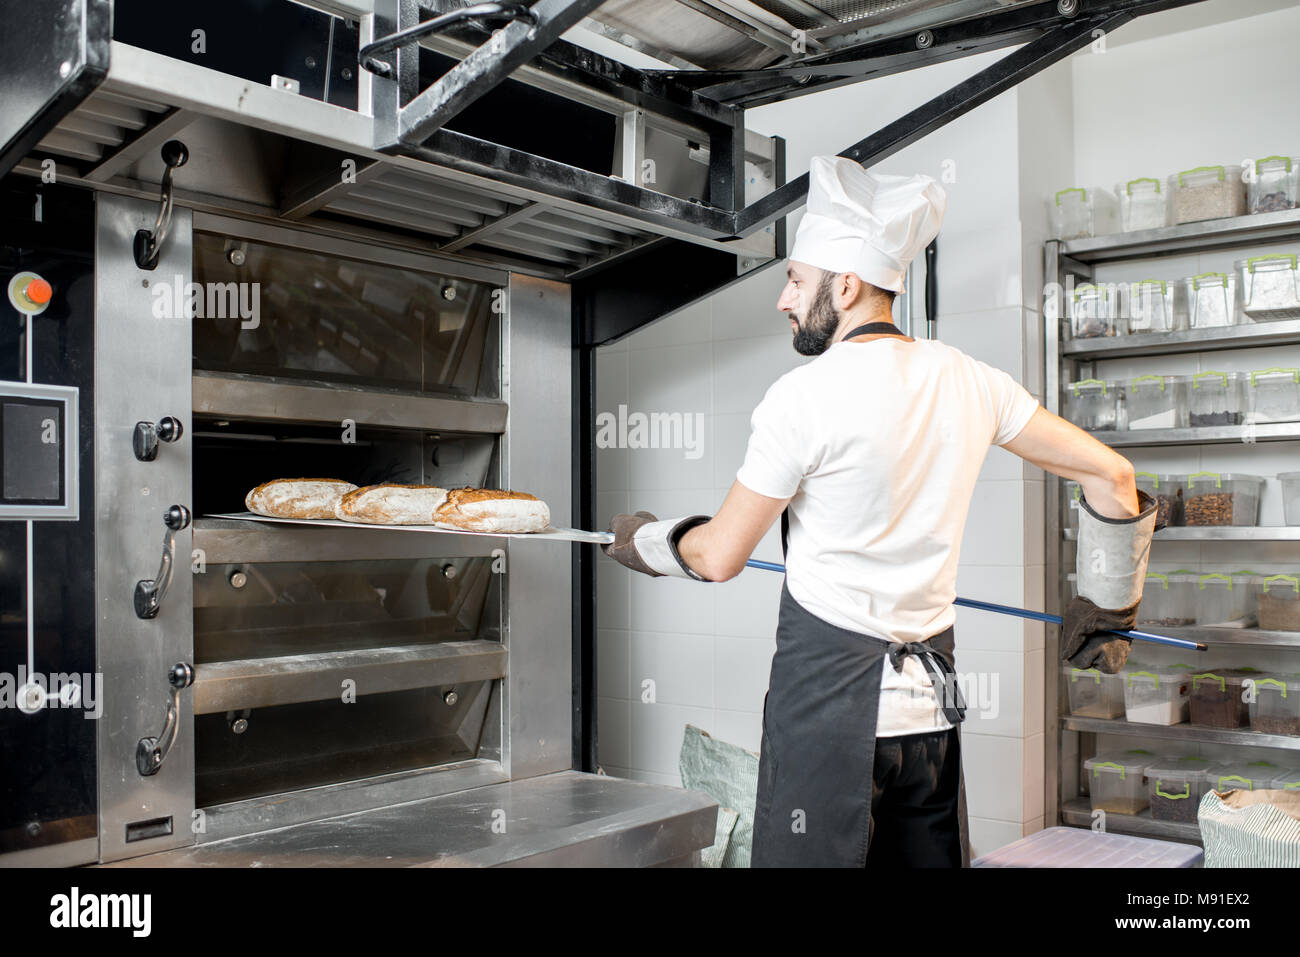 Baker taking off the breads from the oven - Stock Image